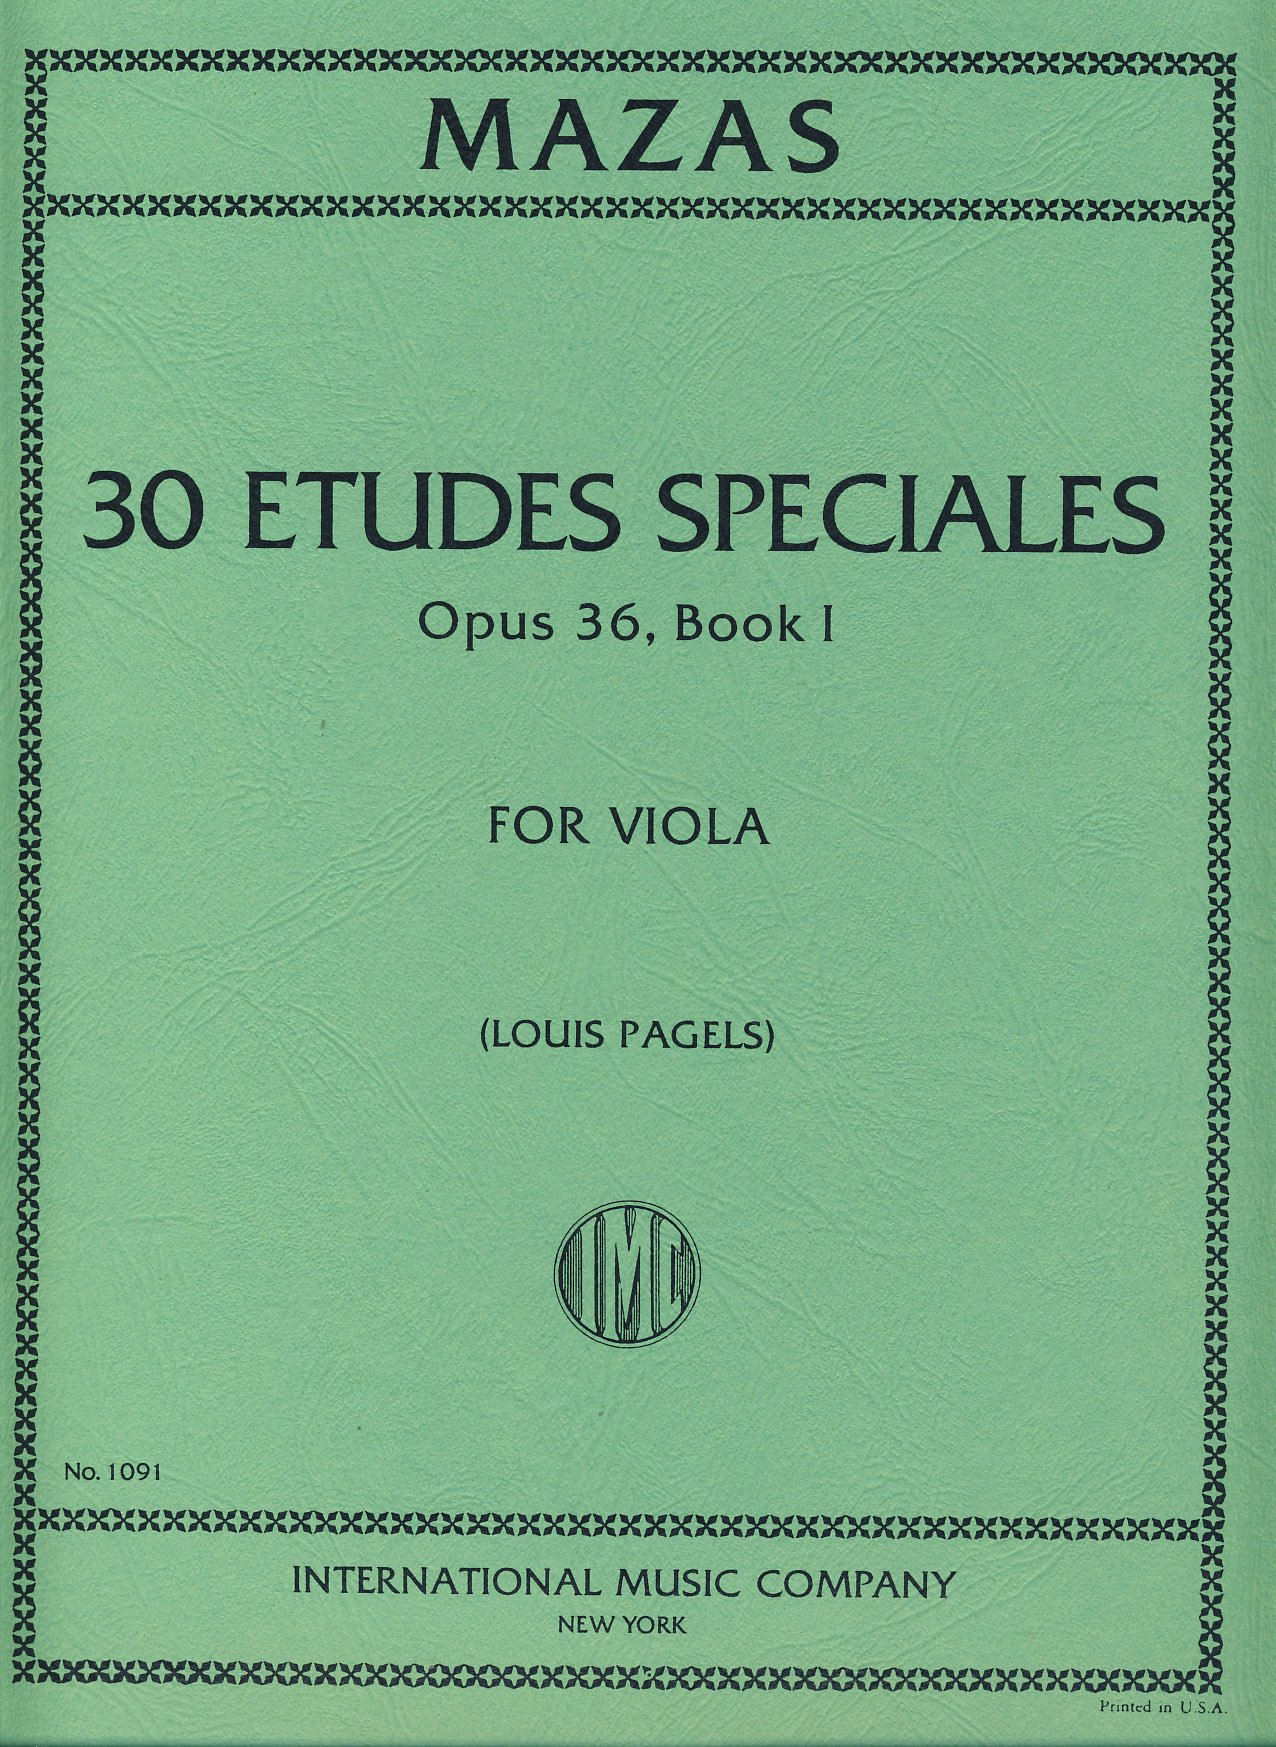 Mazas Jacques Fereol 30 Etudes Speciales Op. 36 Book 1 Viola solo - by Louis Pagels I nternational